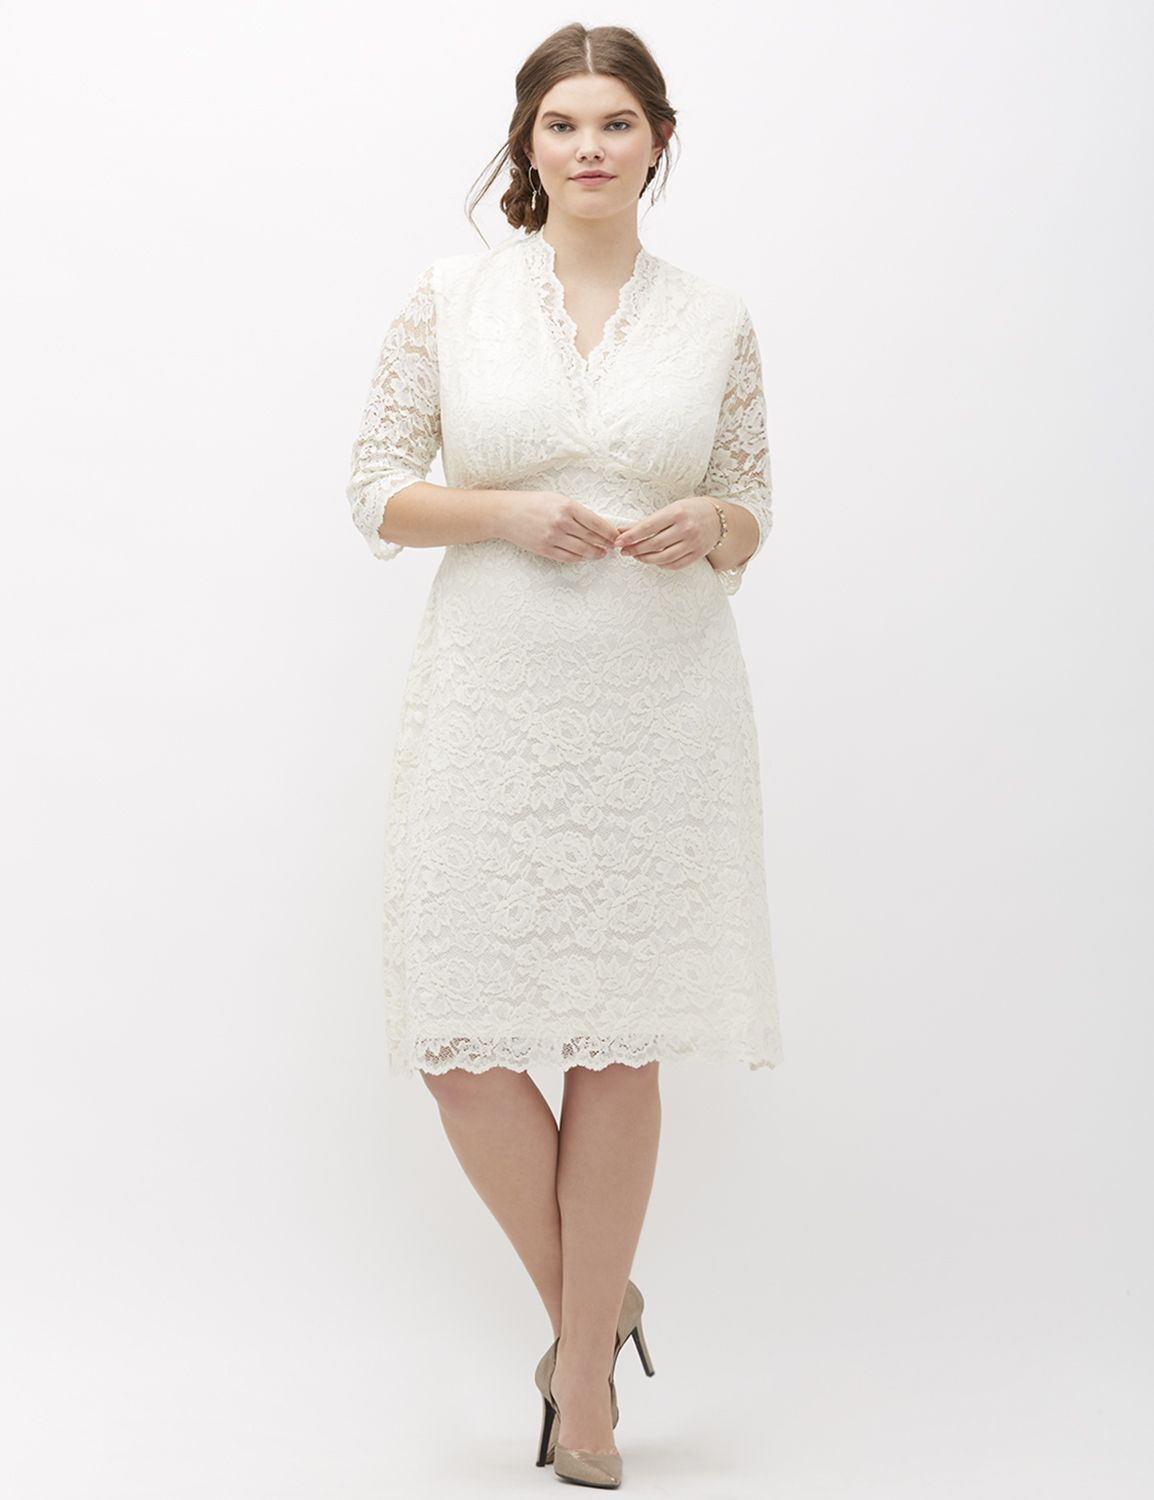 1940s Style Wedding Dresses and Accessories Lane Bryant Womens Luxe Lace Wedding Dress By Kiyonna 1X White $219.99 AT vintagedancer.com